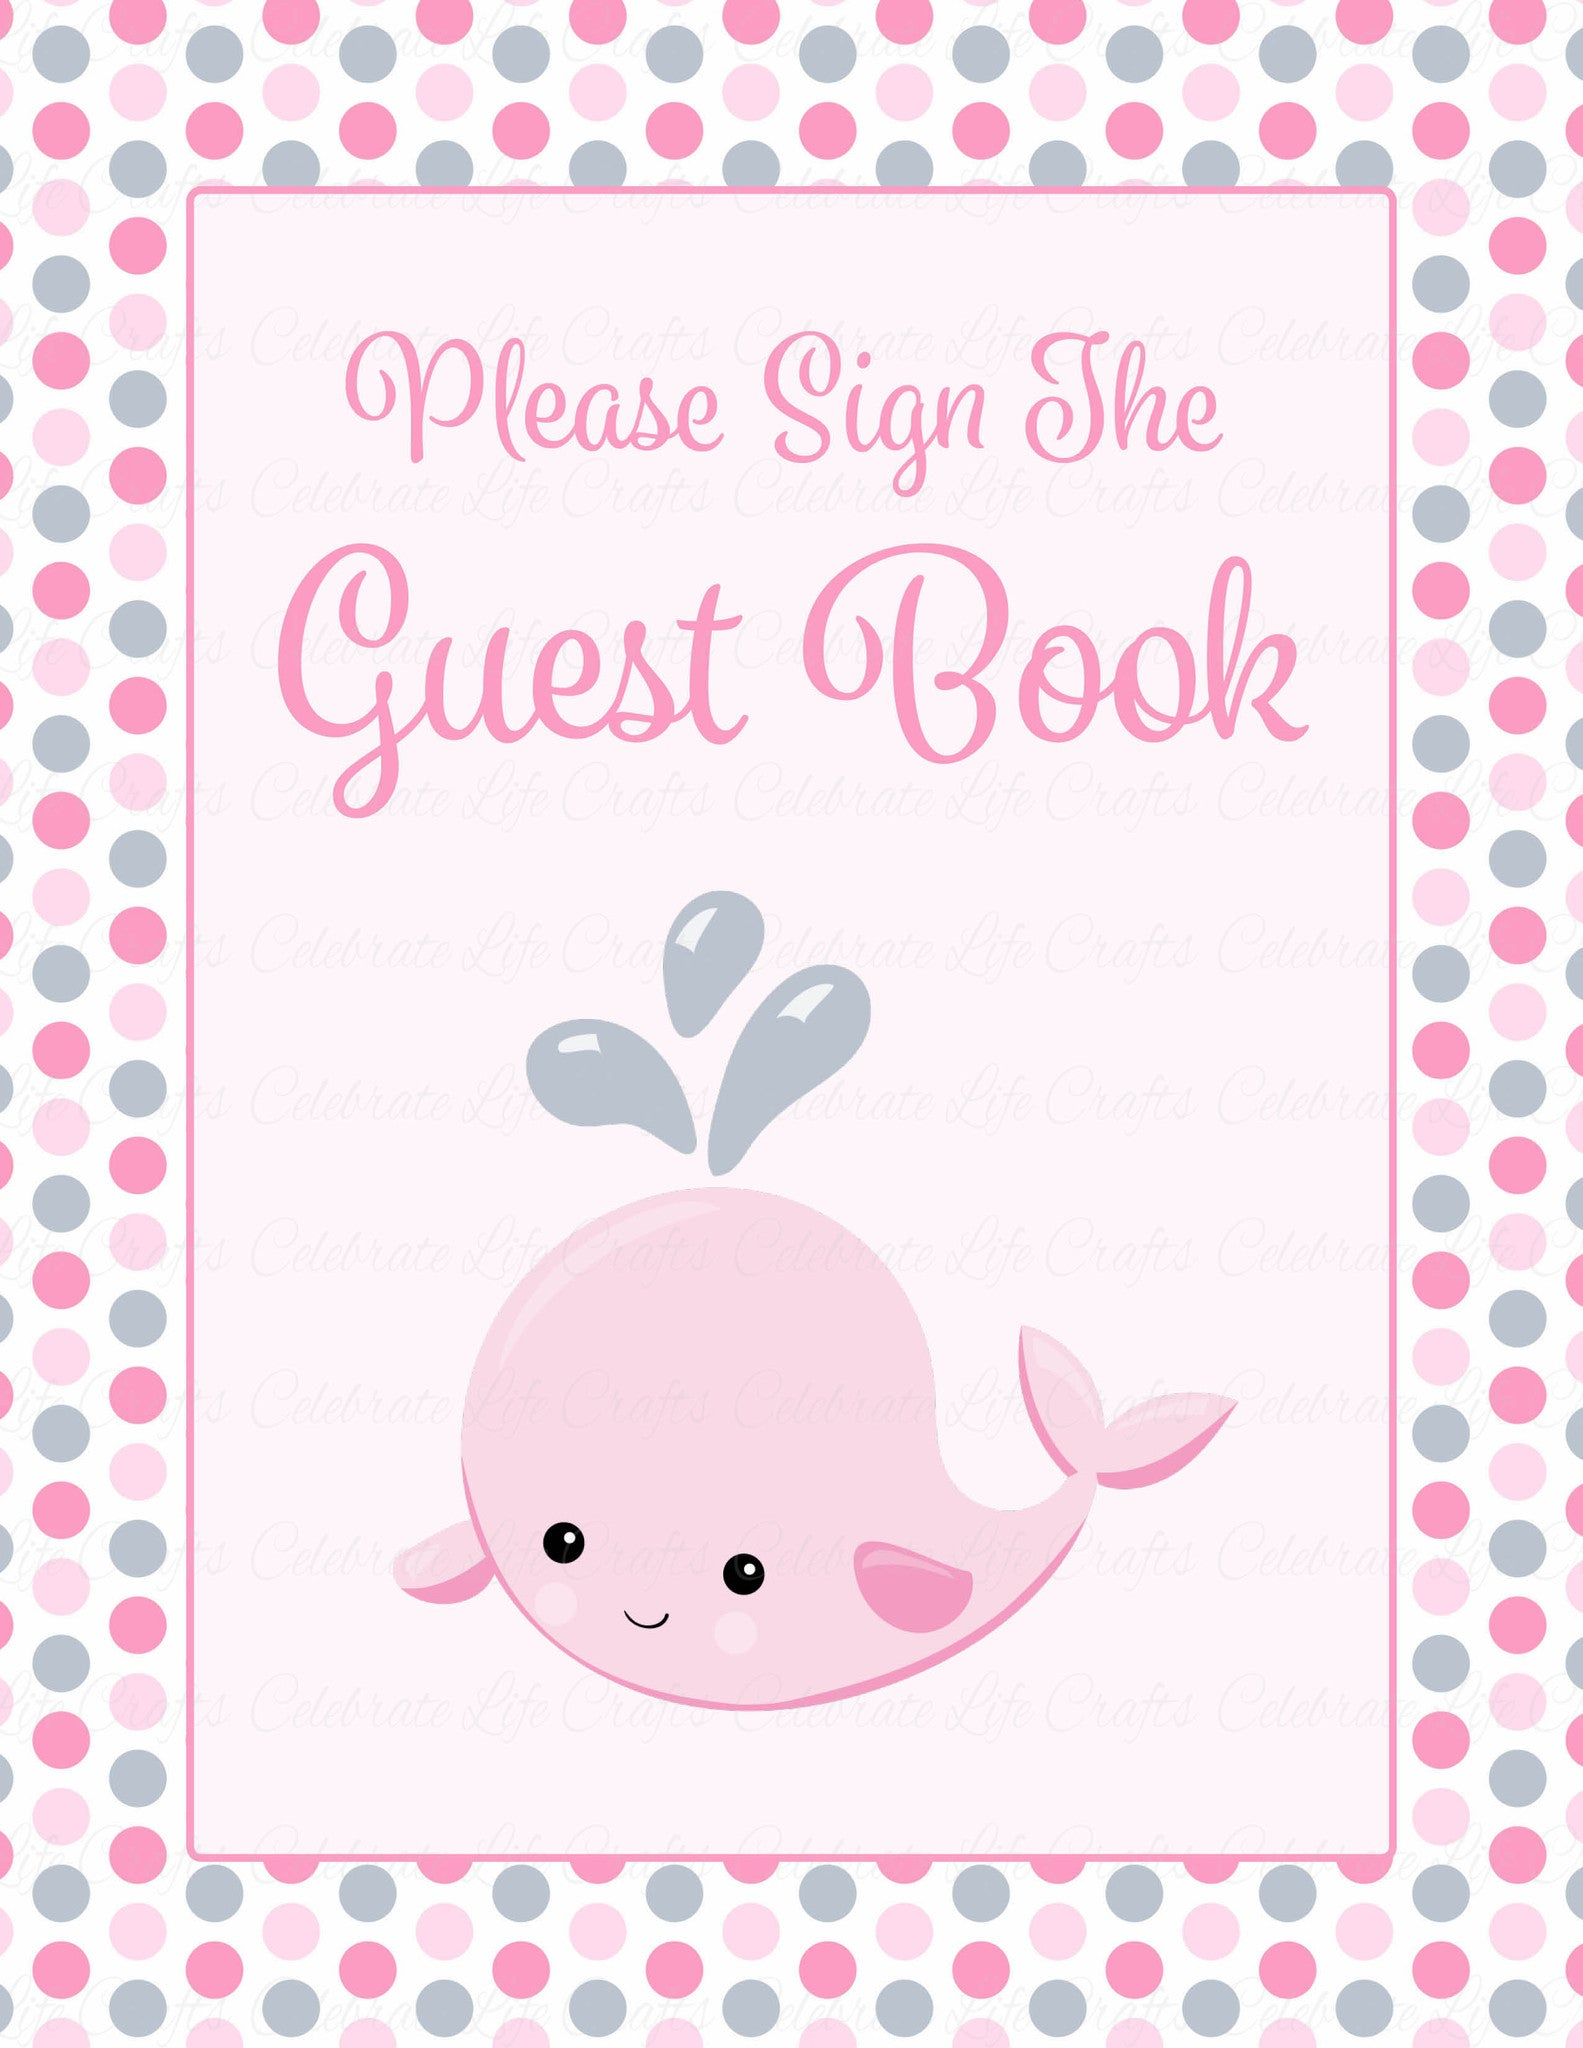 photograph about Printable Baby Shower Decorations named Youngster Shower Visitor Checklist Fastened - Printable Down load - Red Grey Whale Youngster Shower Decorations - B15008